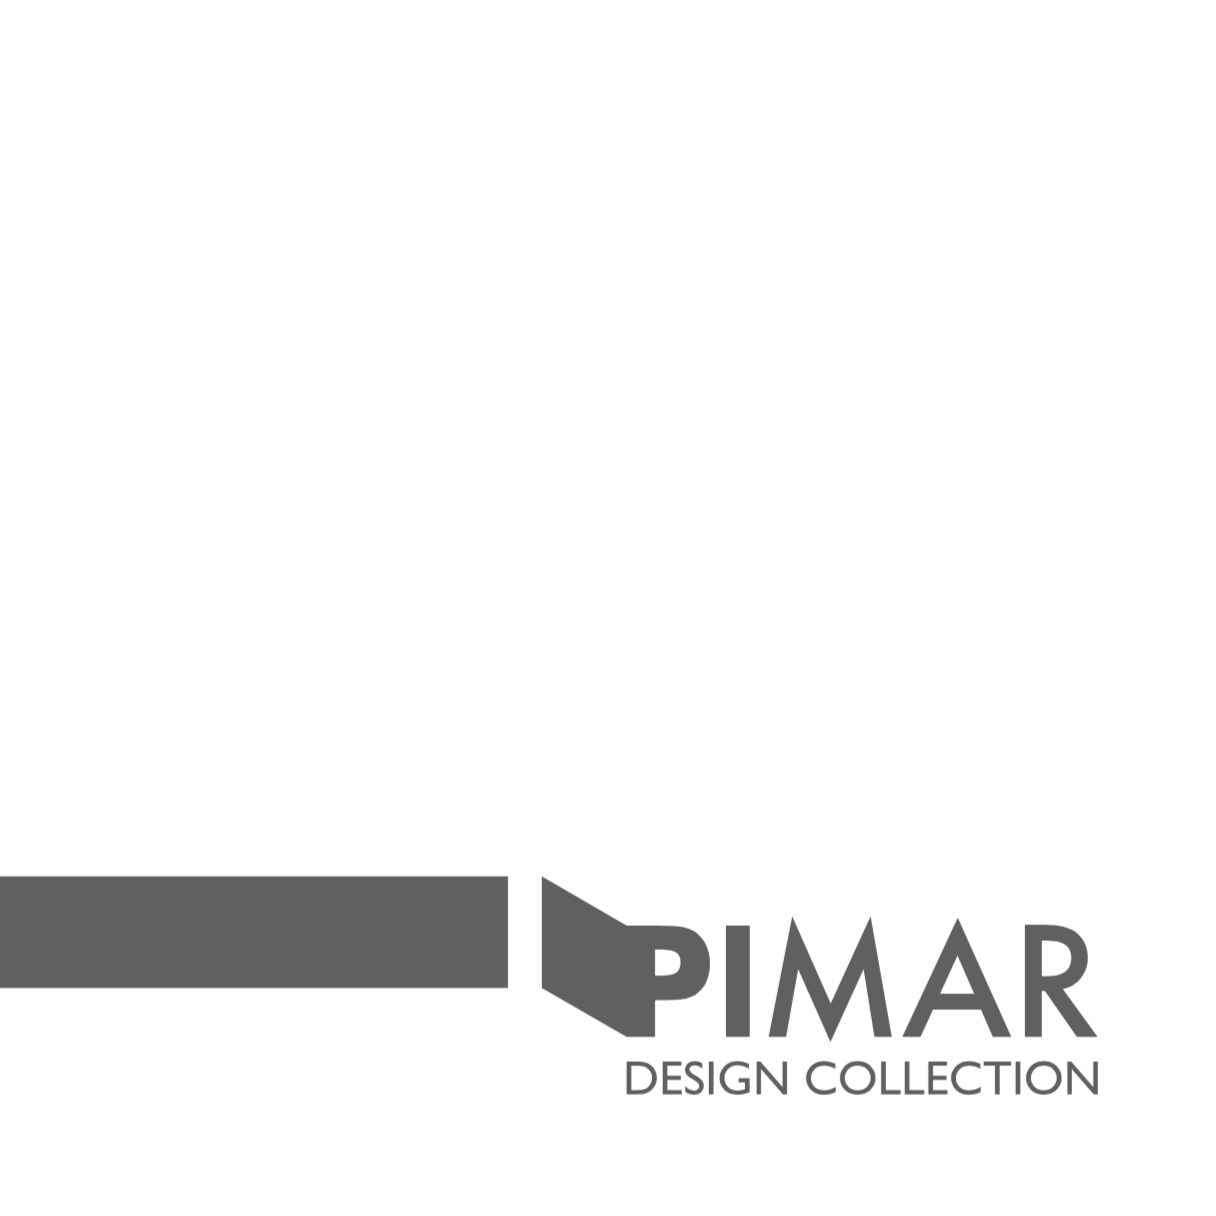 PIMAR Design Collection